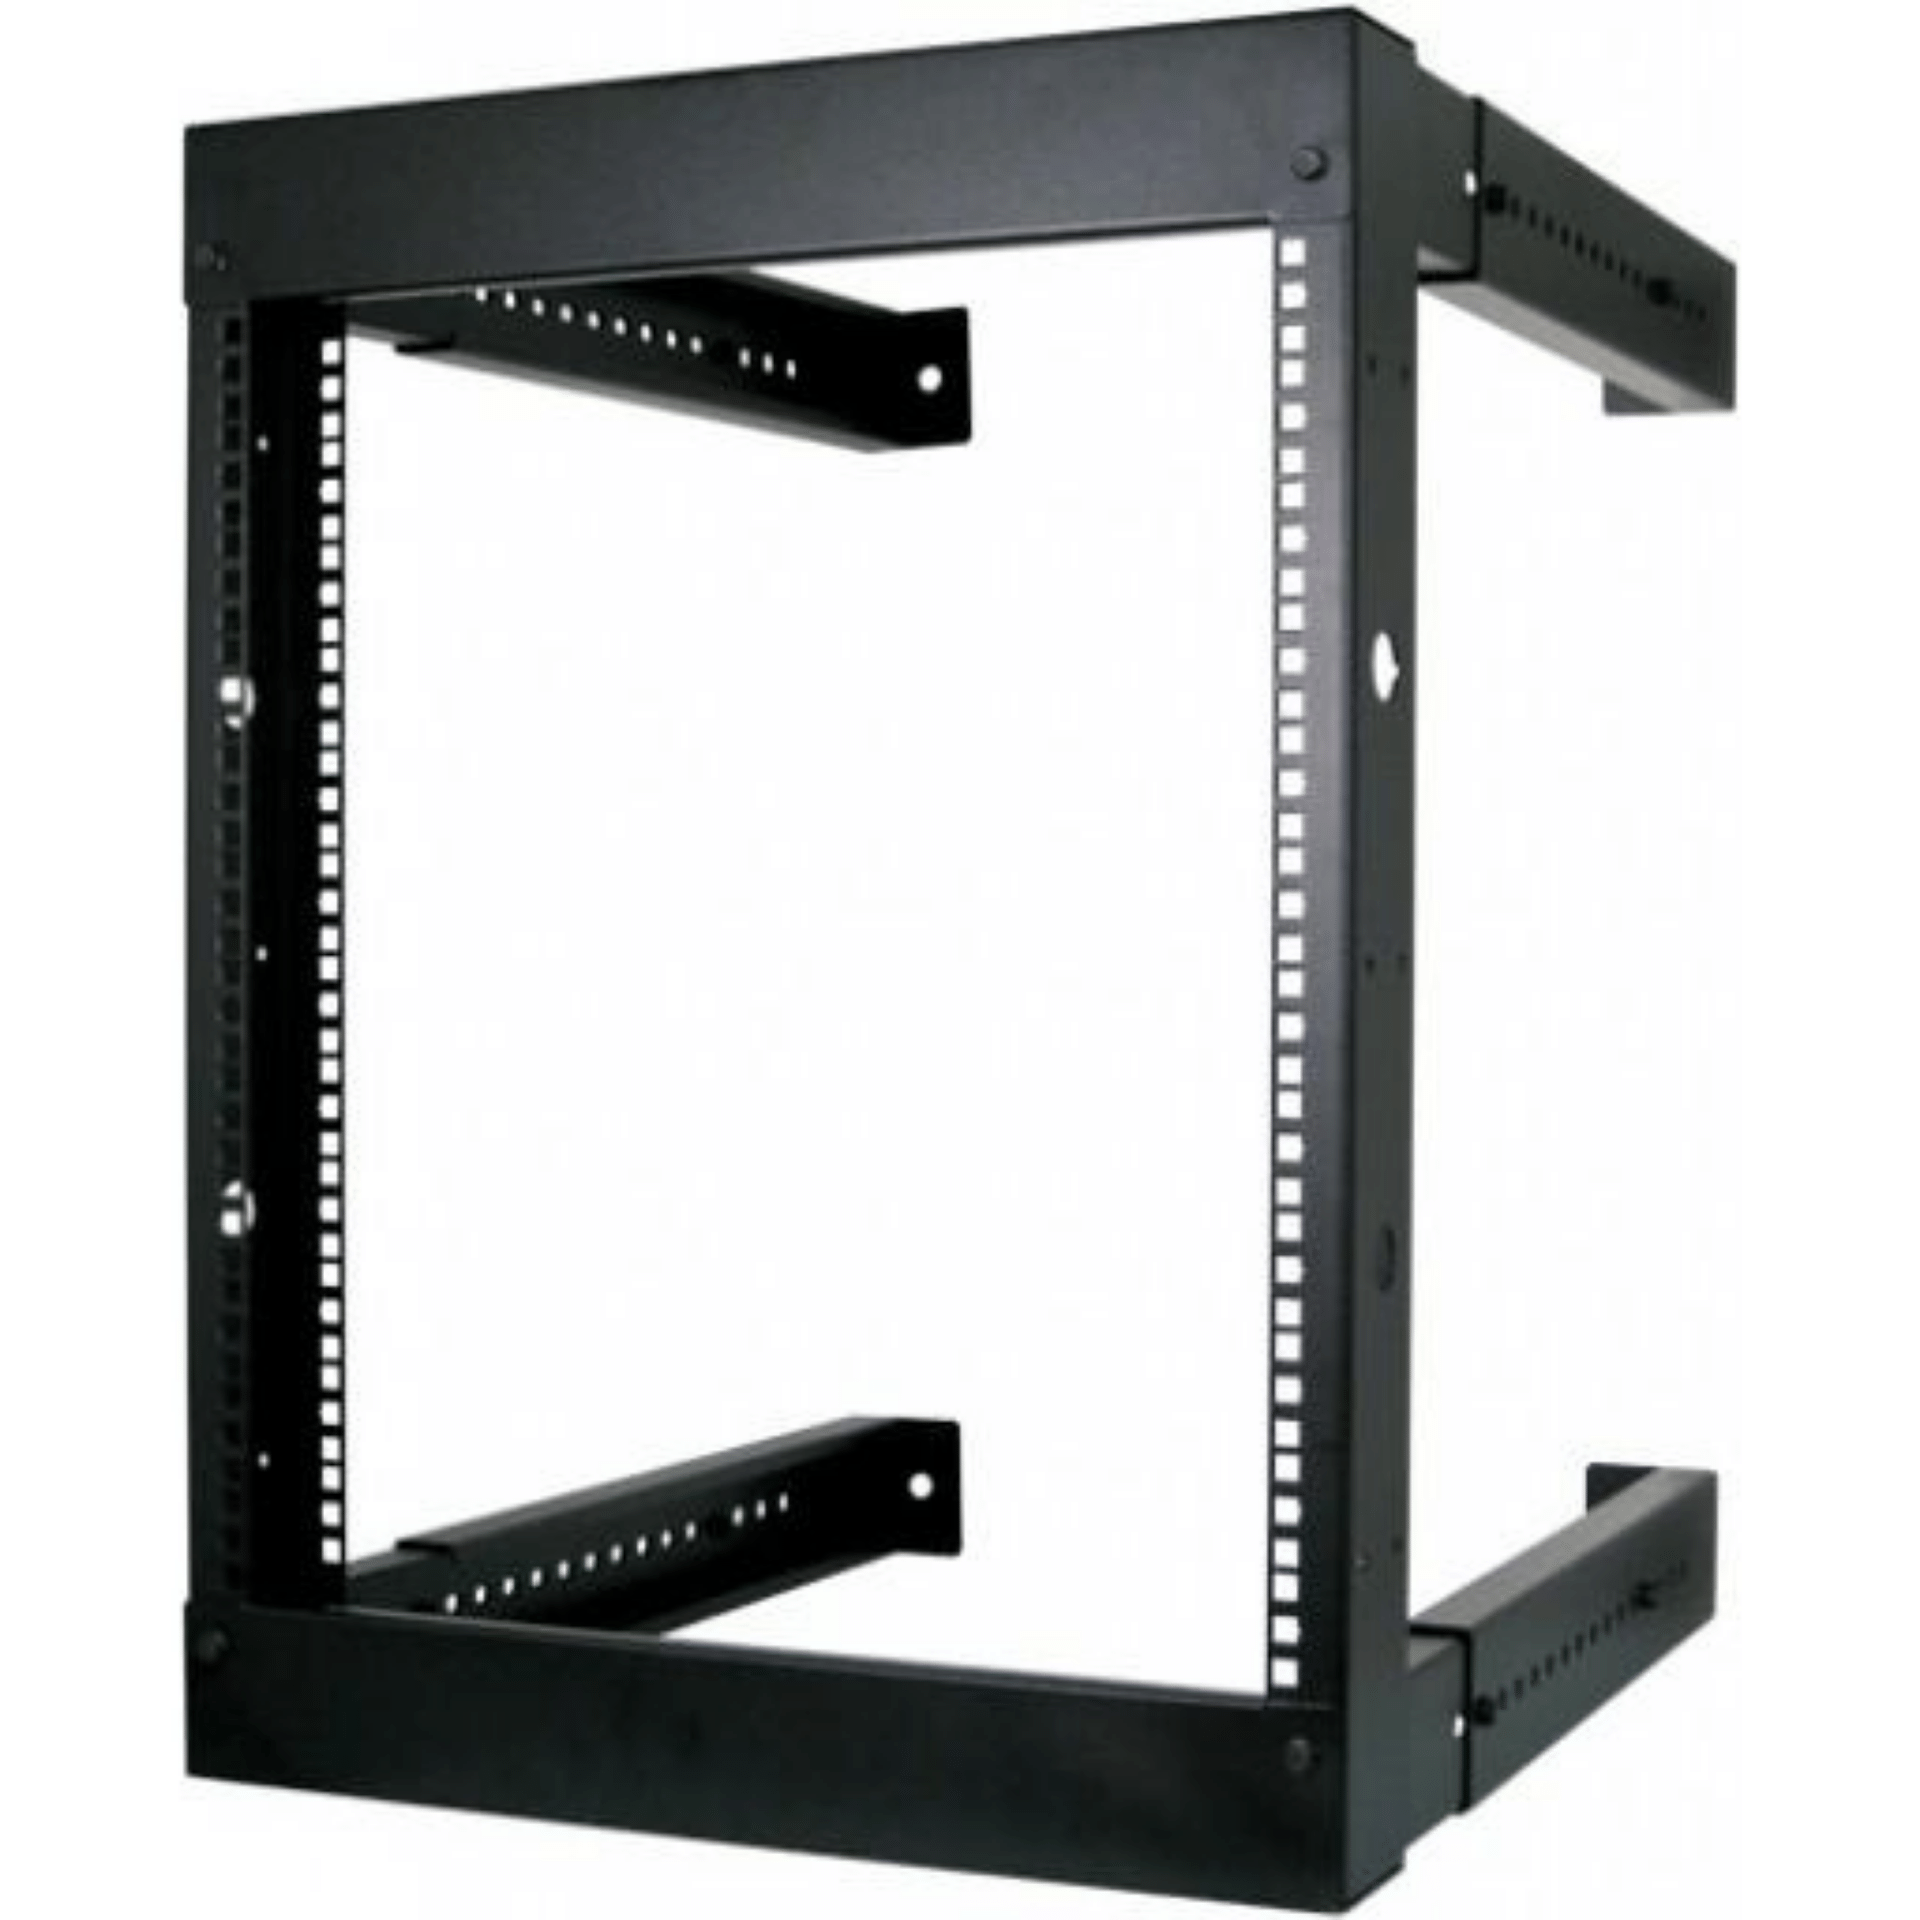 12U Open Wall Mount Frame Rack